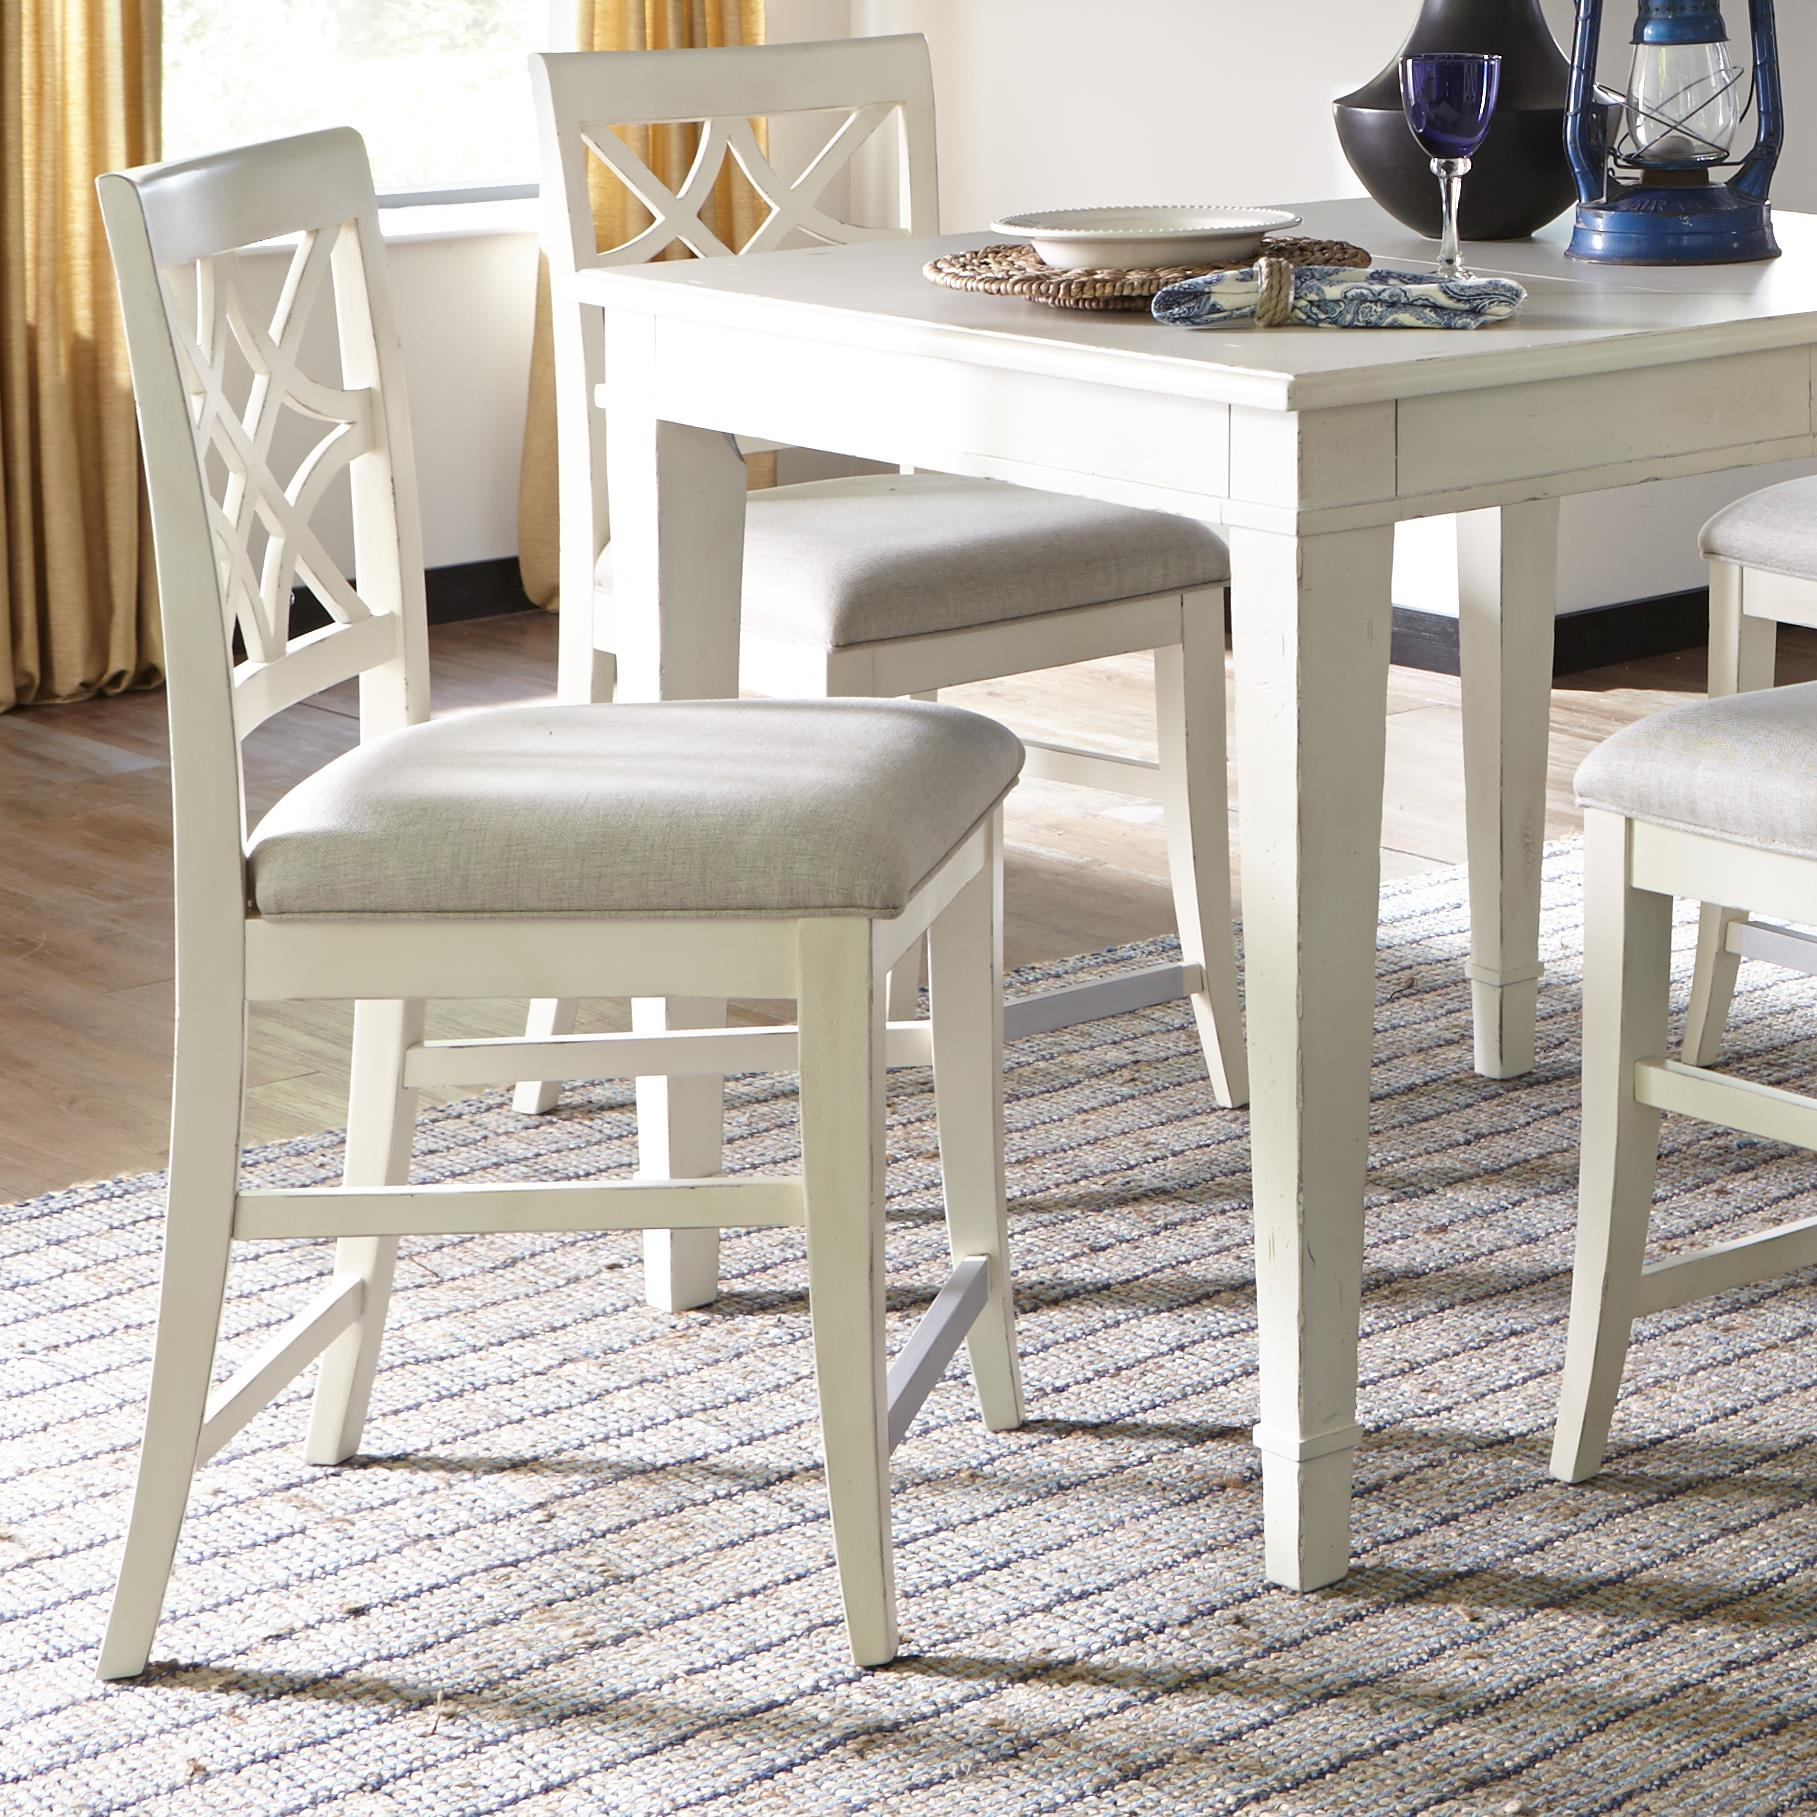 Nashville counter height chair with lattice back by trisha